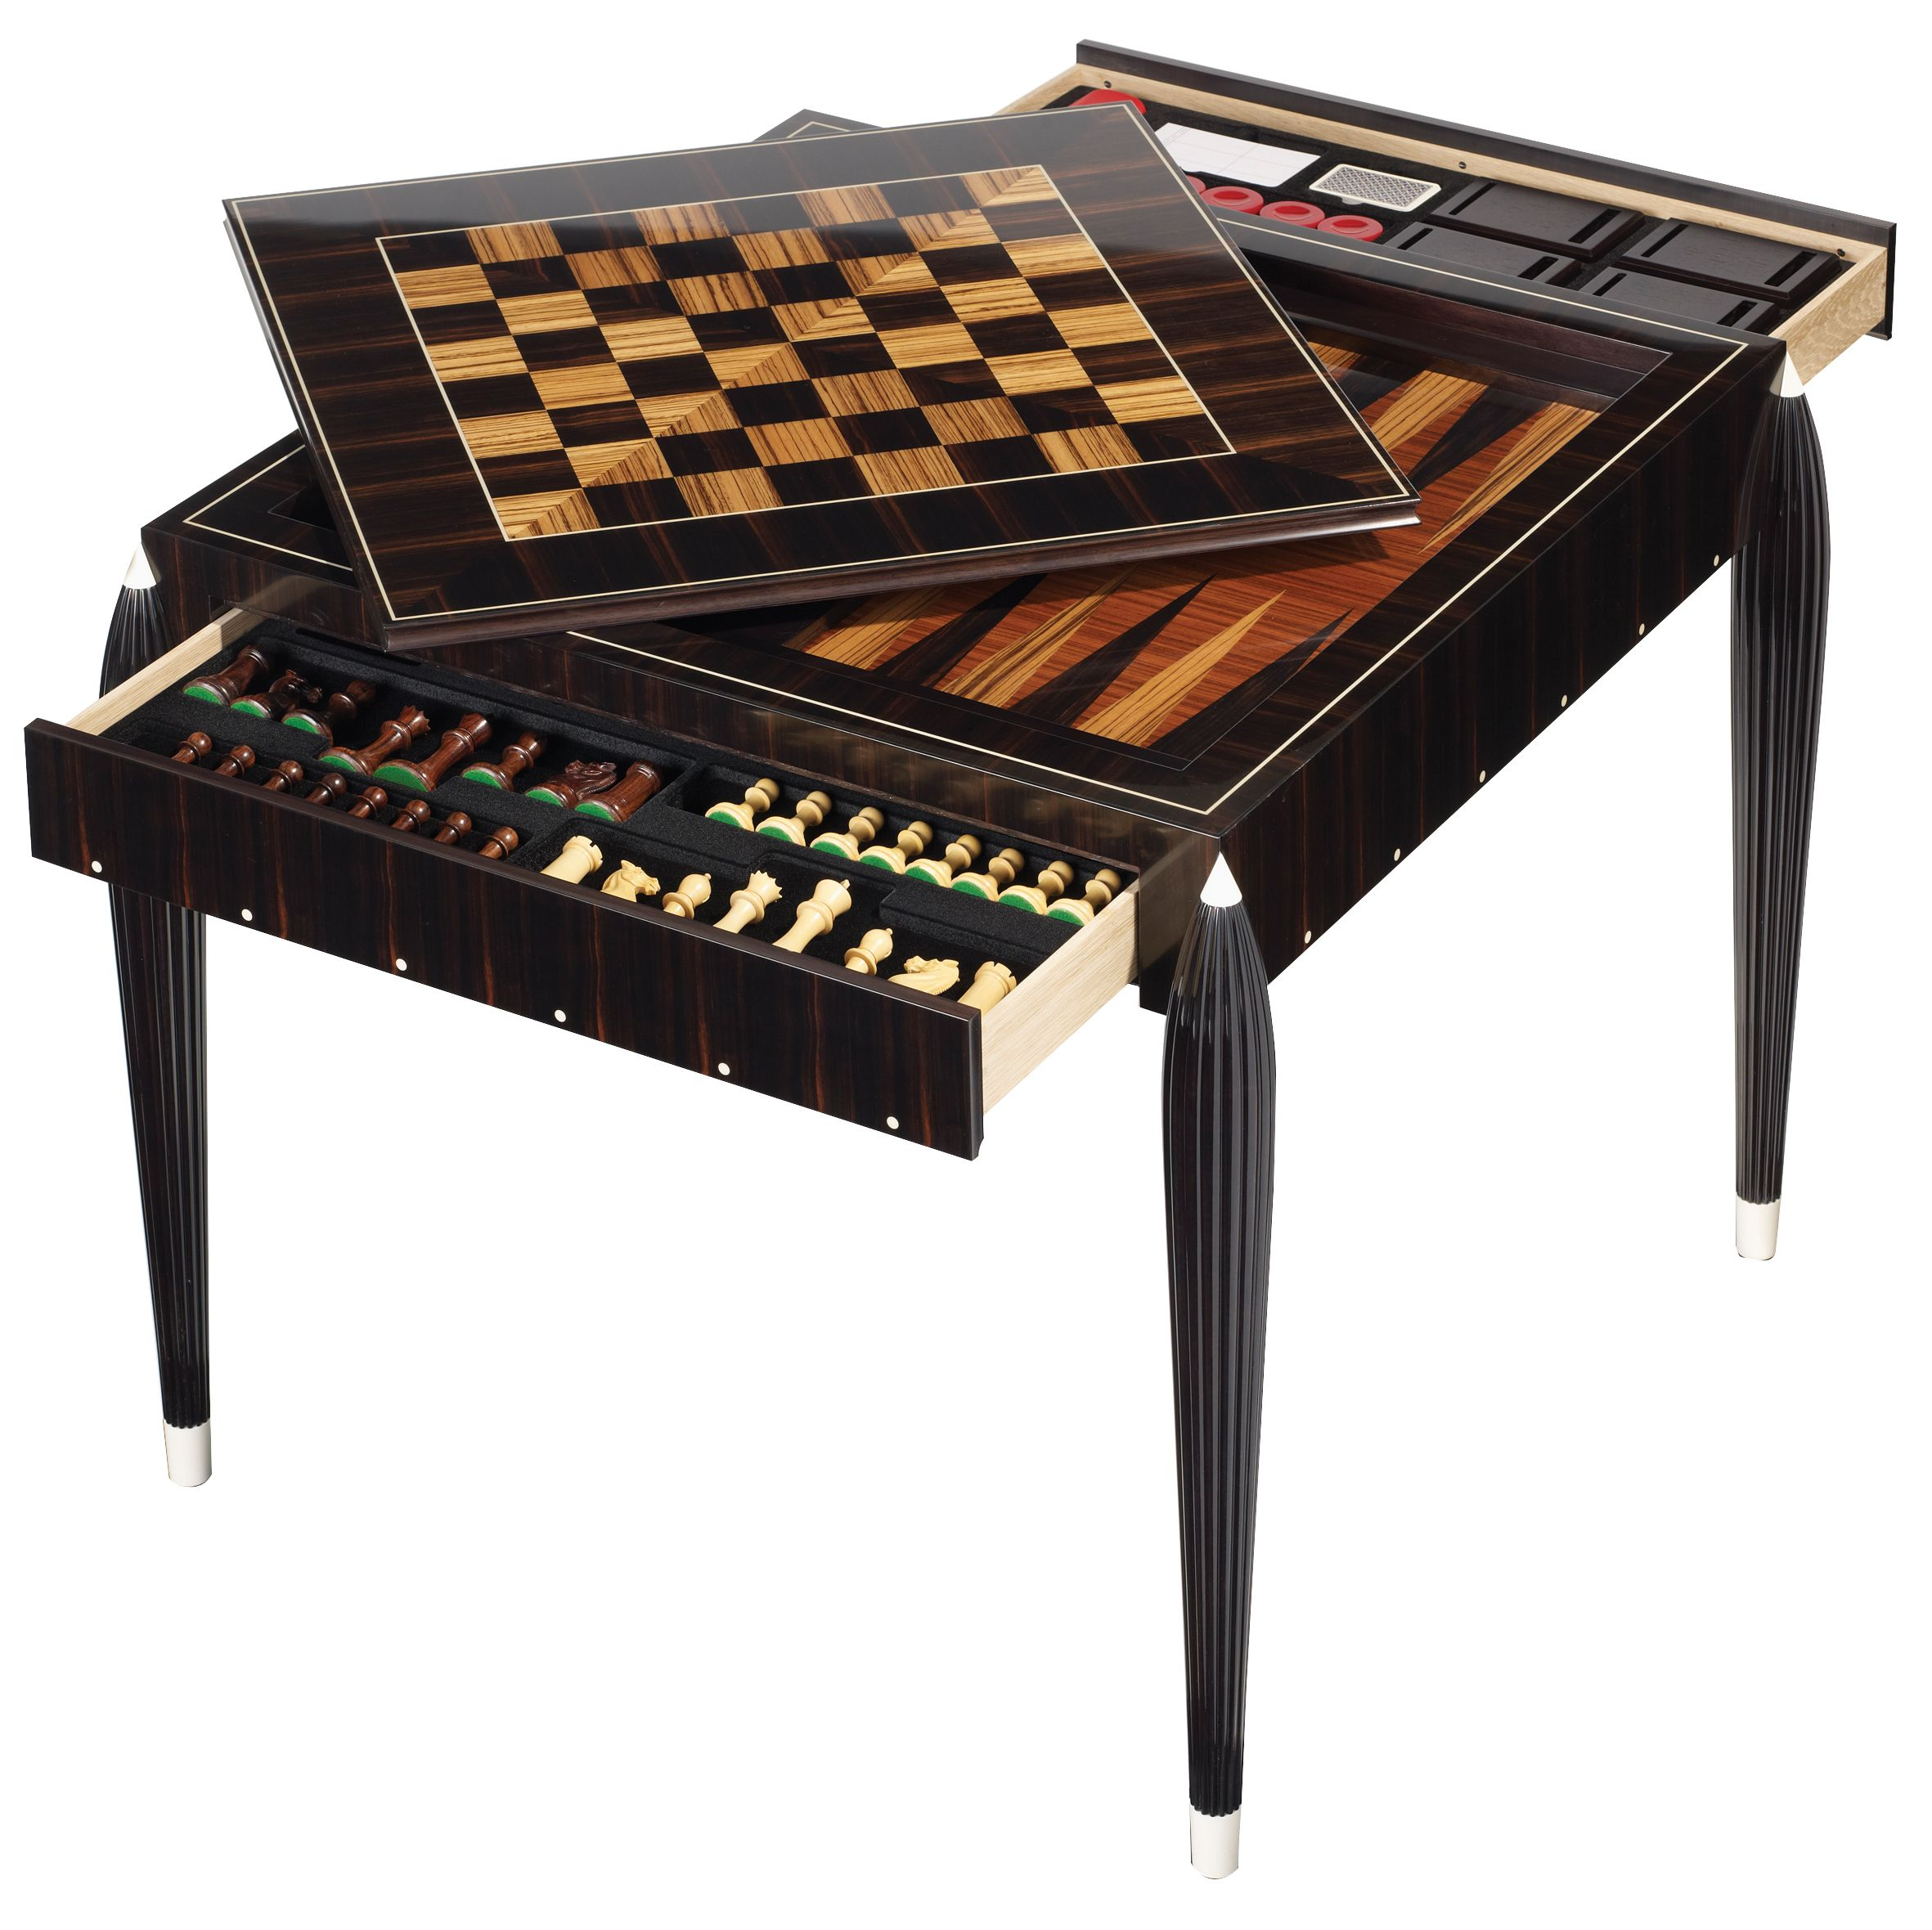 Masterpiece 2012 - The Ridotto Games Table #Art #Design #Marquetry